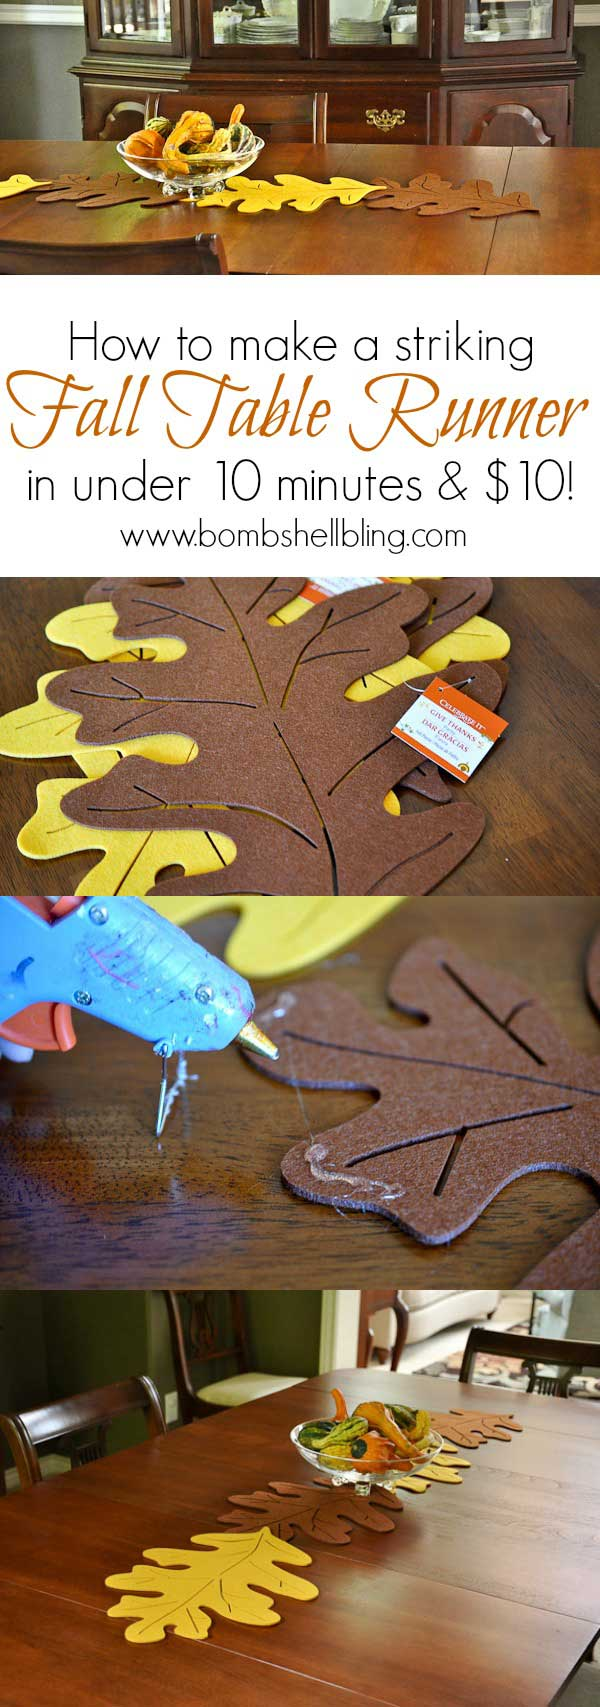 30 Magical DIY Fall Decorations For Your Household homesthetics ideas (23)